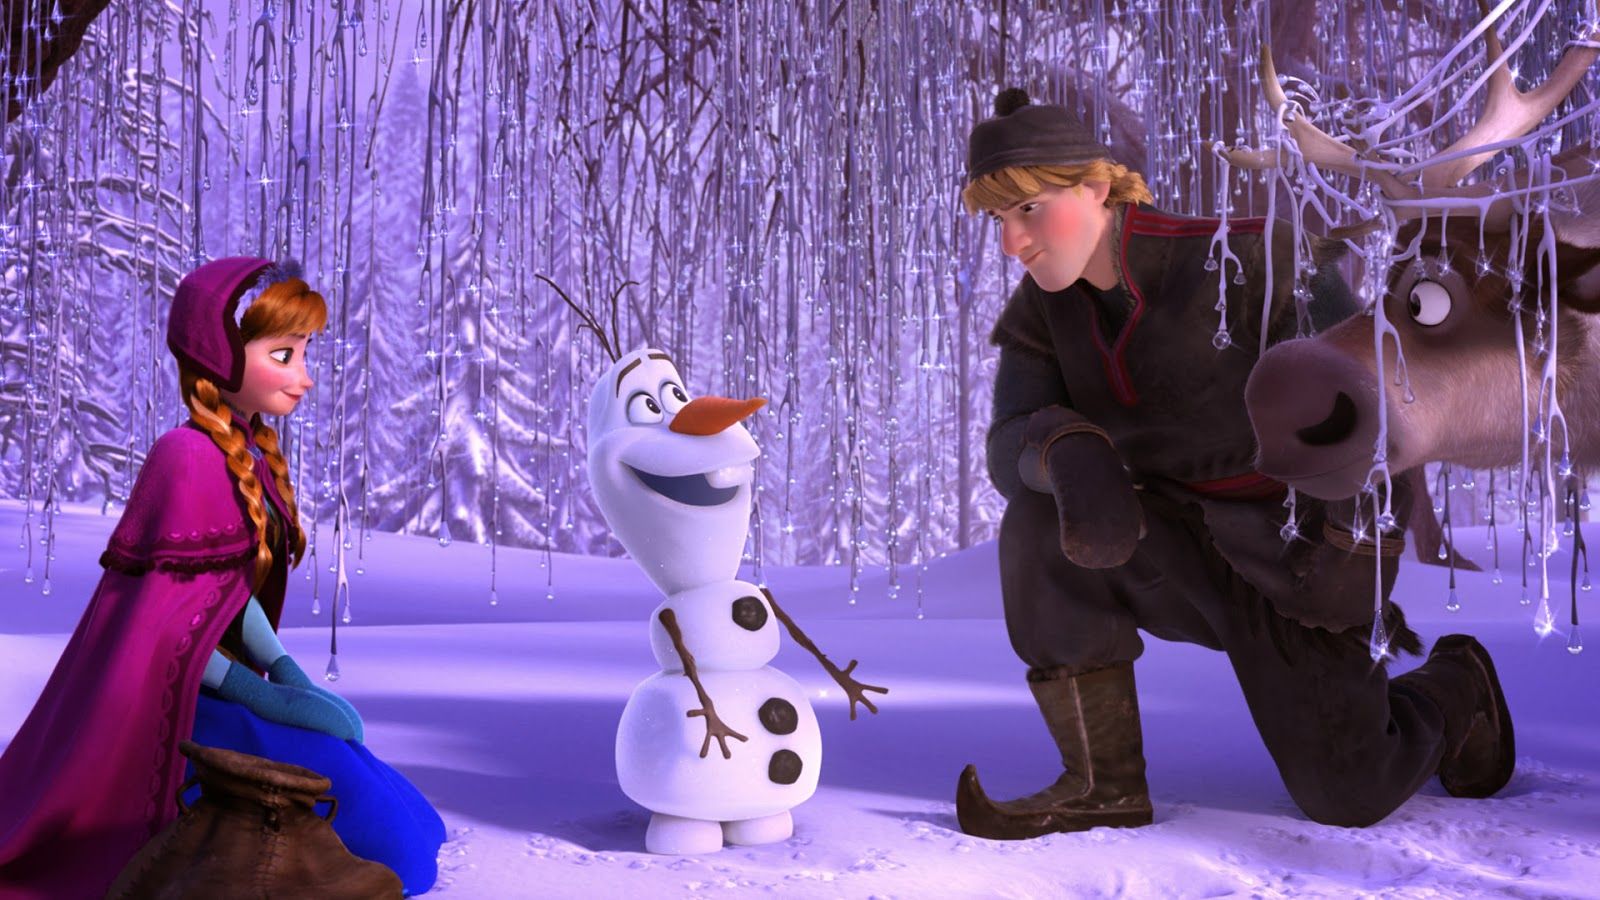 disney daze: frozen (2013) | the movie marmite man